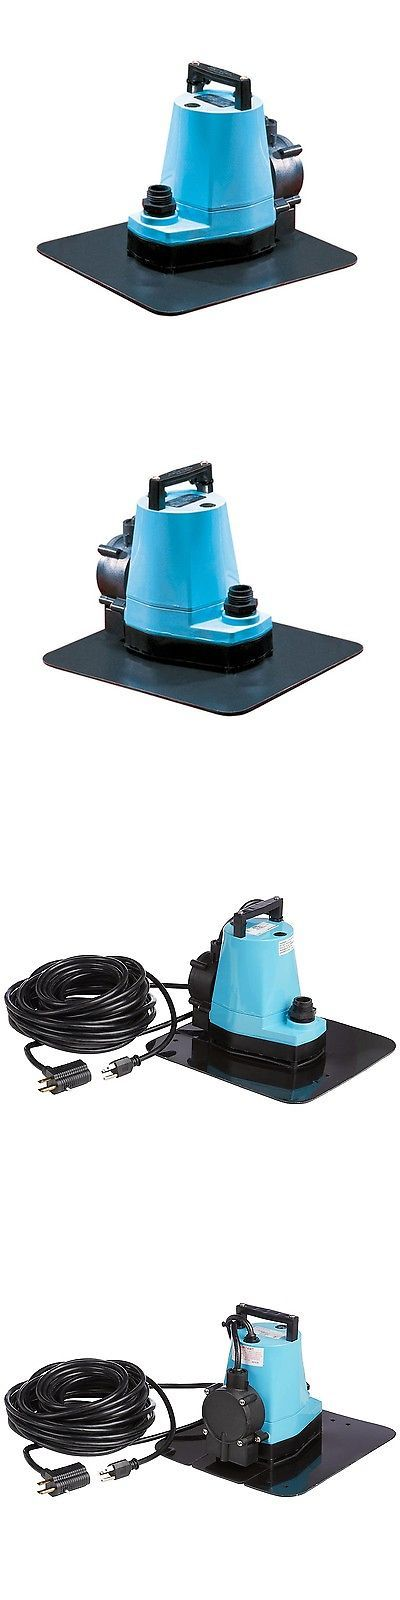 Pool Pumps 181485: Little Giant 5-Apcp 1 6 Hp 115V 60Hz Automatic Safeguards Pool Cover Pump 505600 -> BUY IT NOW ONLY: $141.99 on eBay!